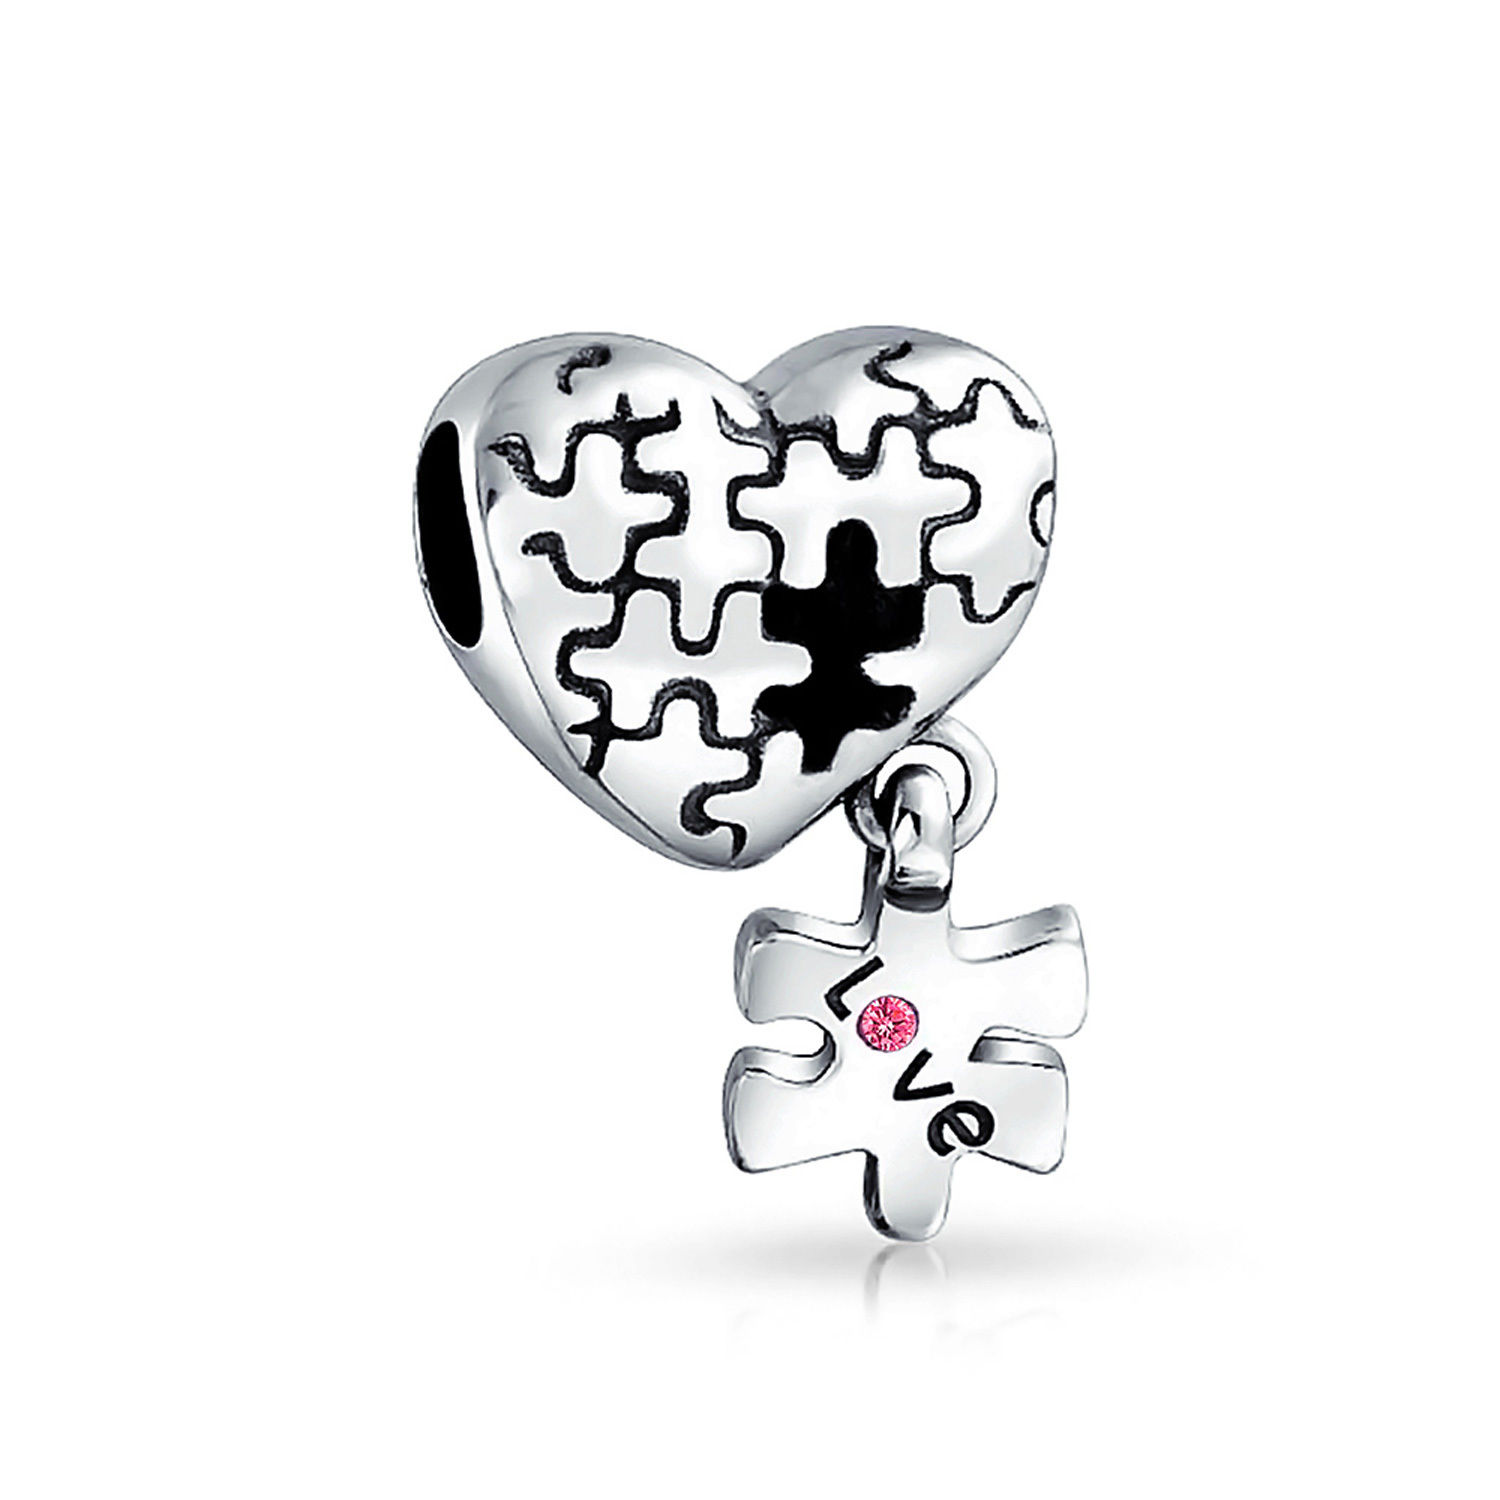 1500x1500 Bling Jewelry 925 Silver Autism Charm Puzzle Dangle Heart Bead